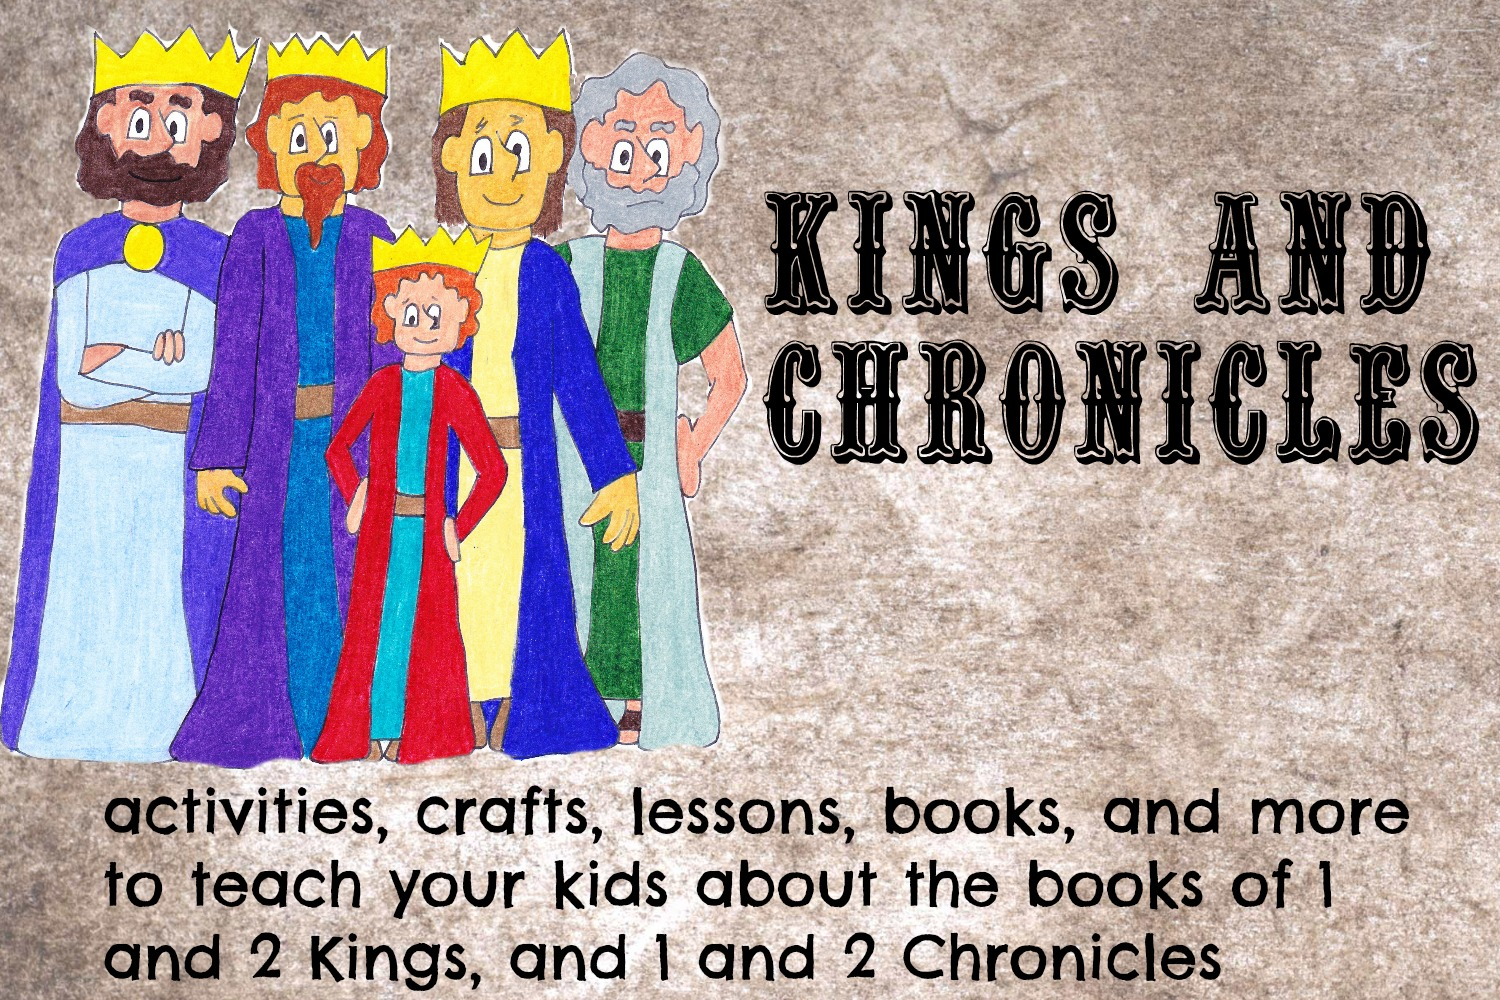 Kings and Chronicles Bible pinterest board